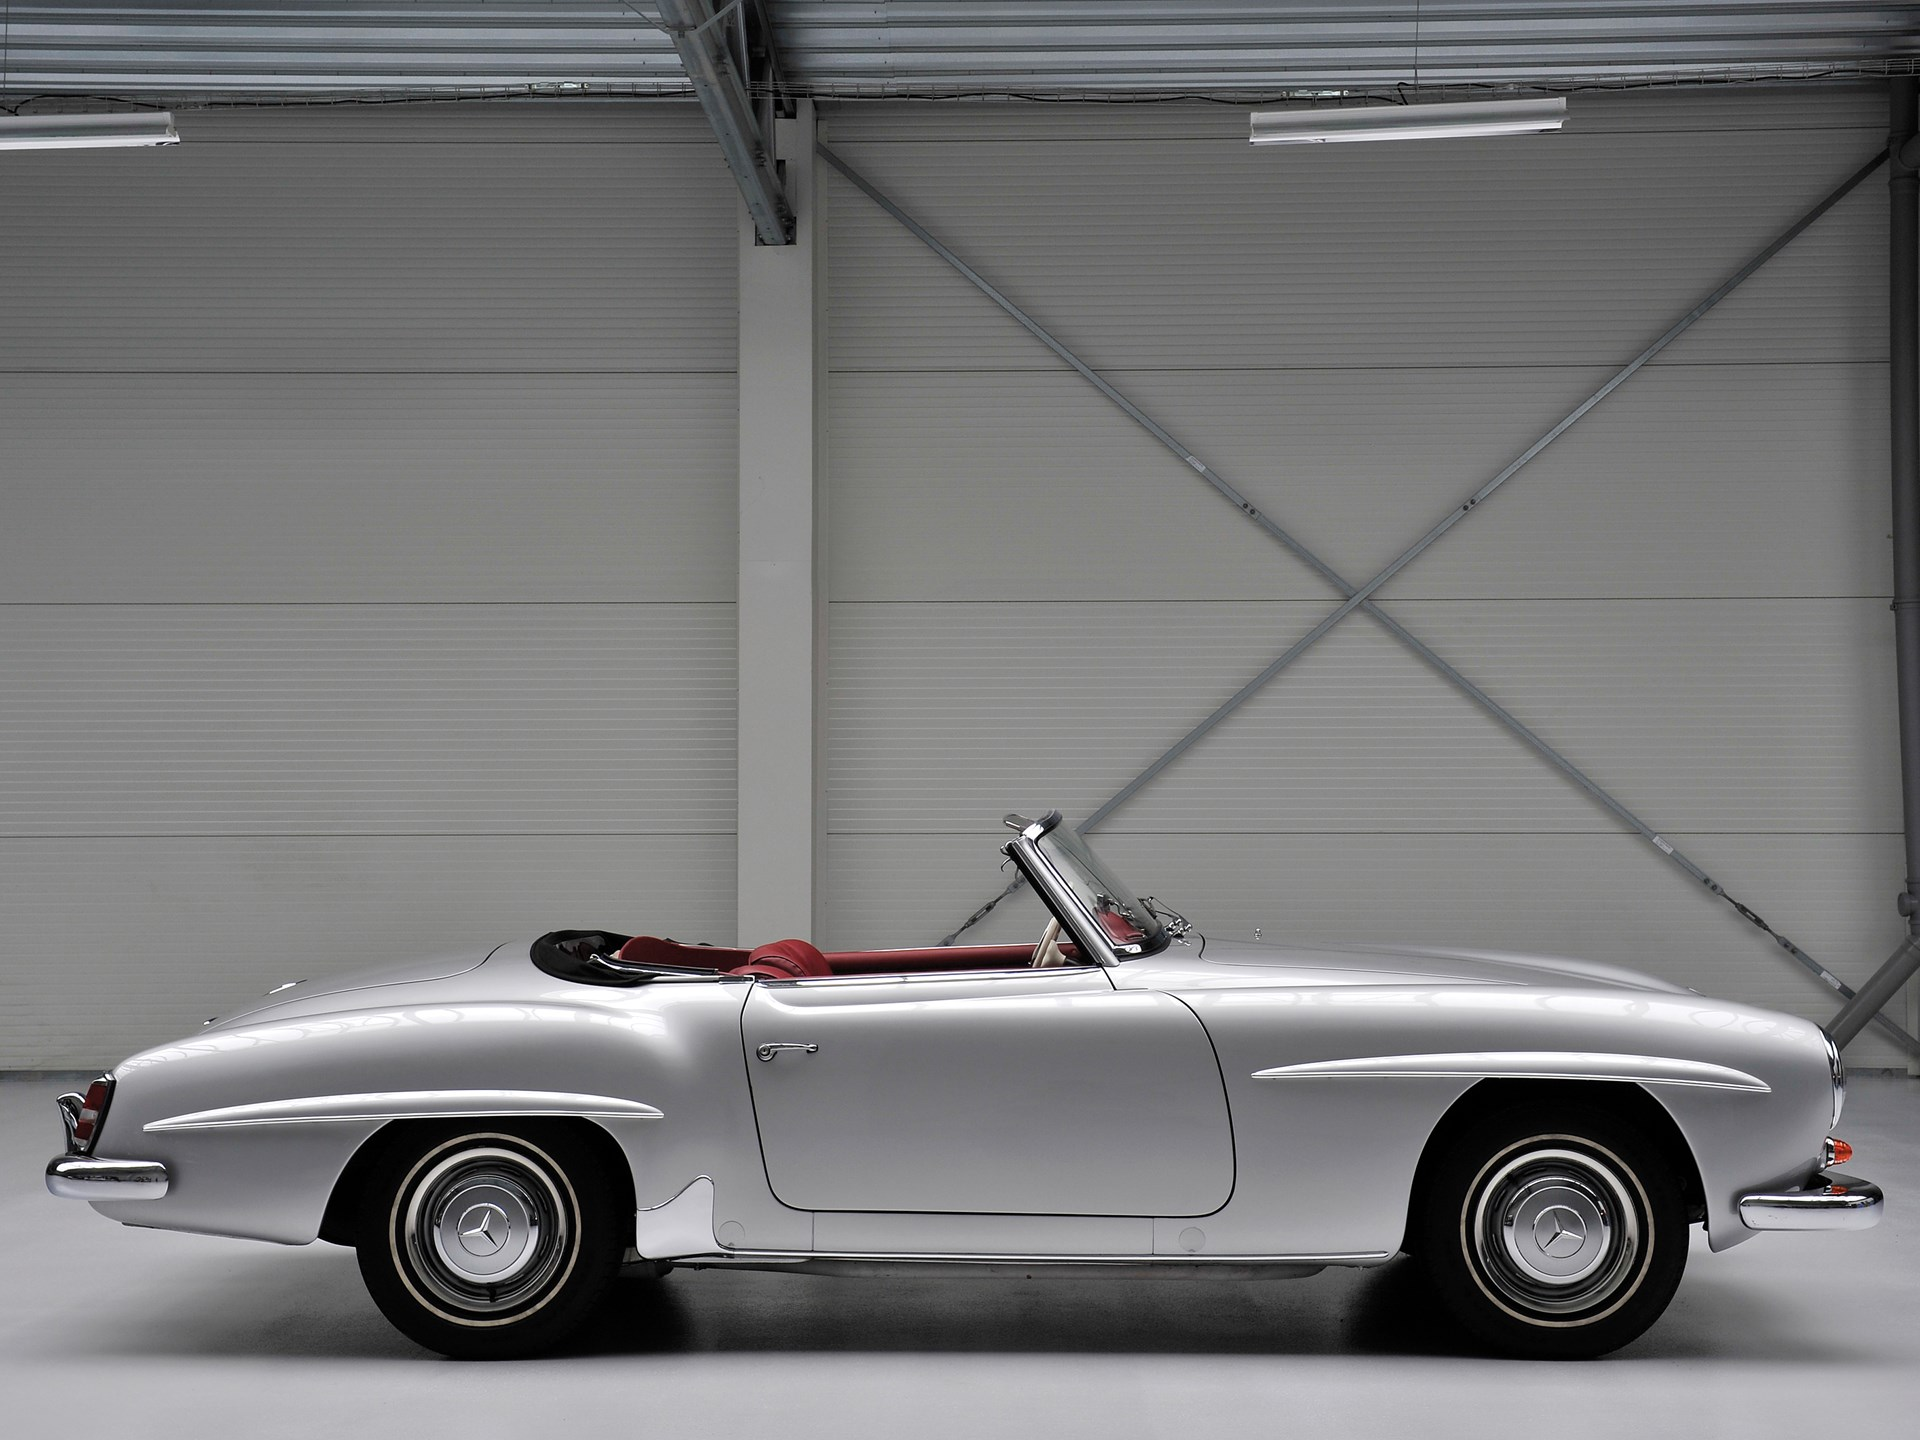 1961 Mercedes-Benz 190 SL